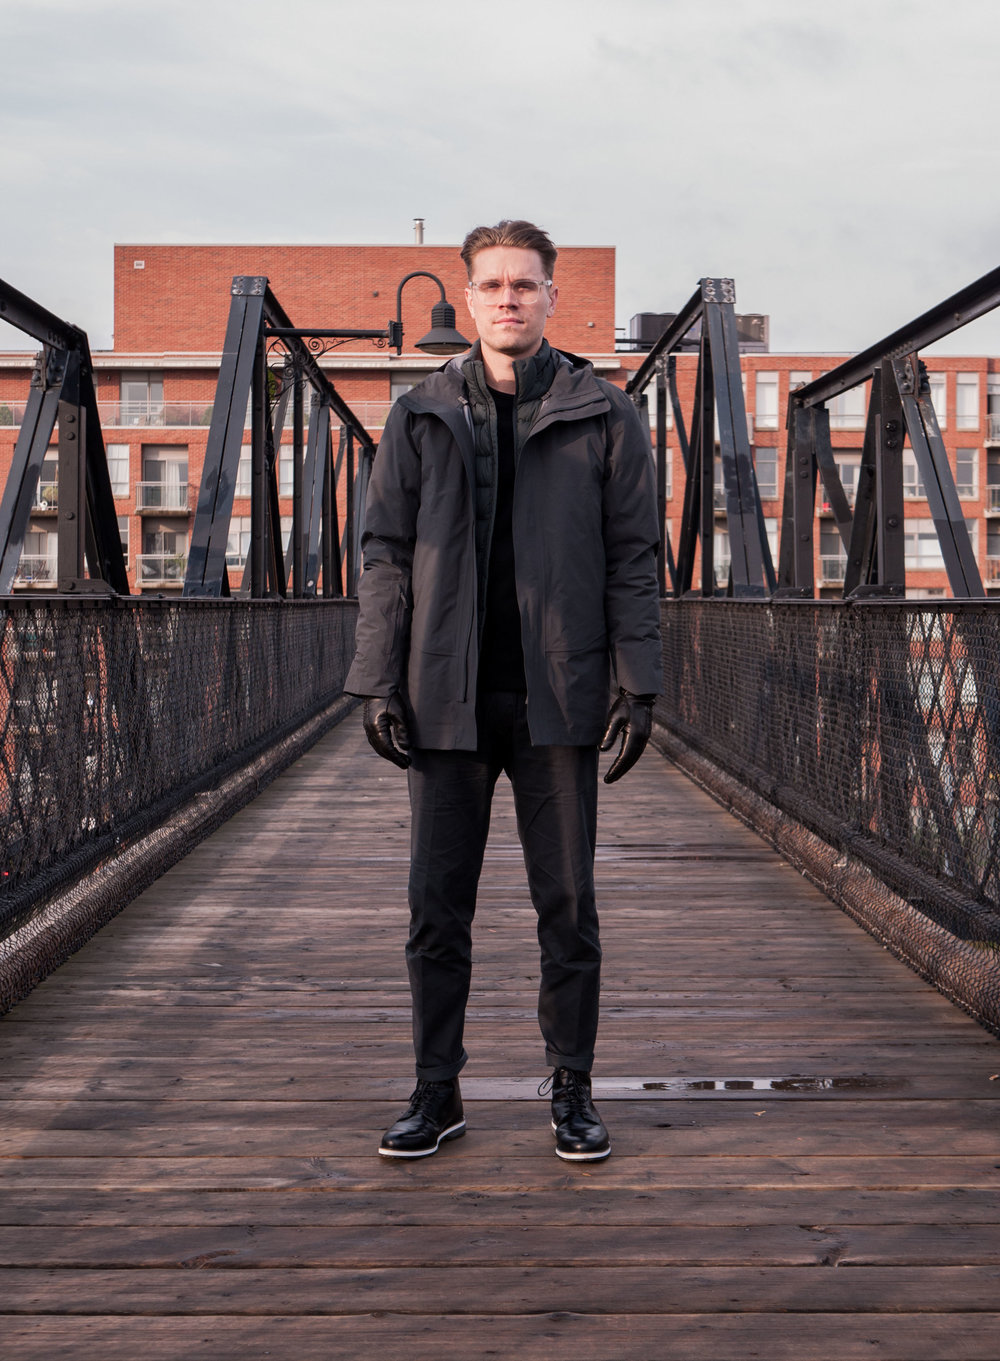 007    Arc'teryx Veilance  Jacket ,  Sweater  &  Pants      WANT Les Essentiels  Boots     Hestra  Gloves